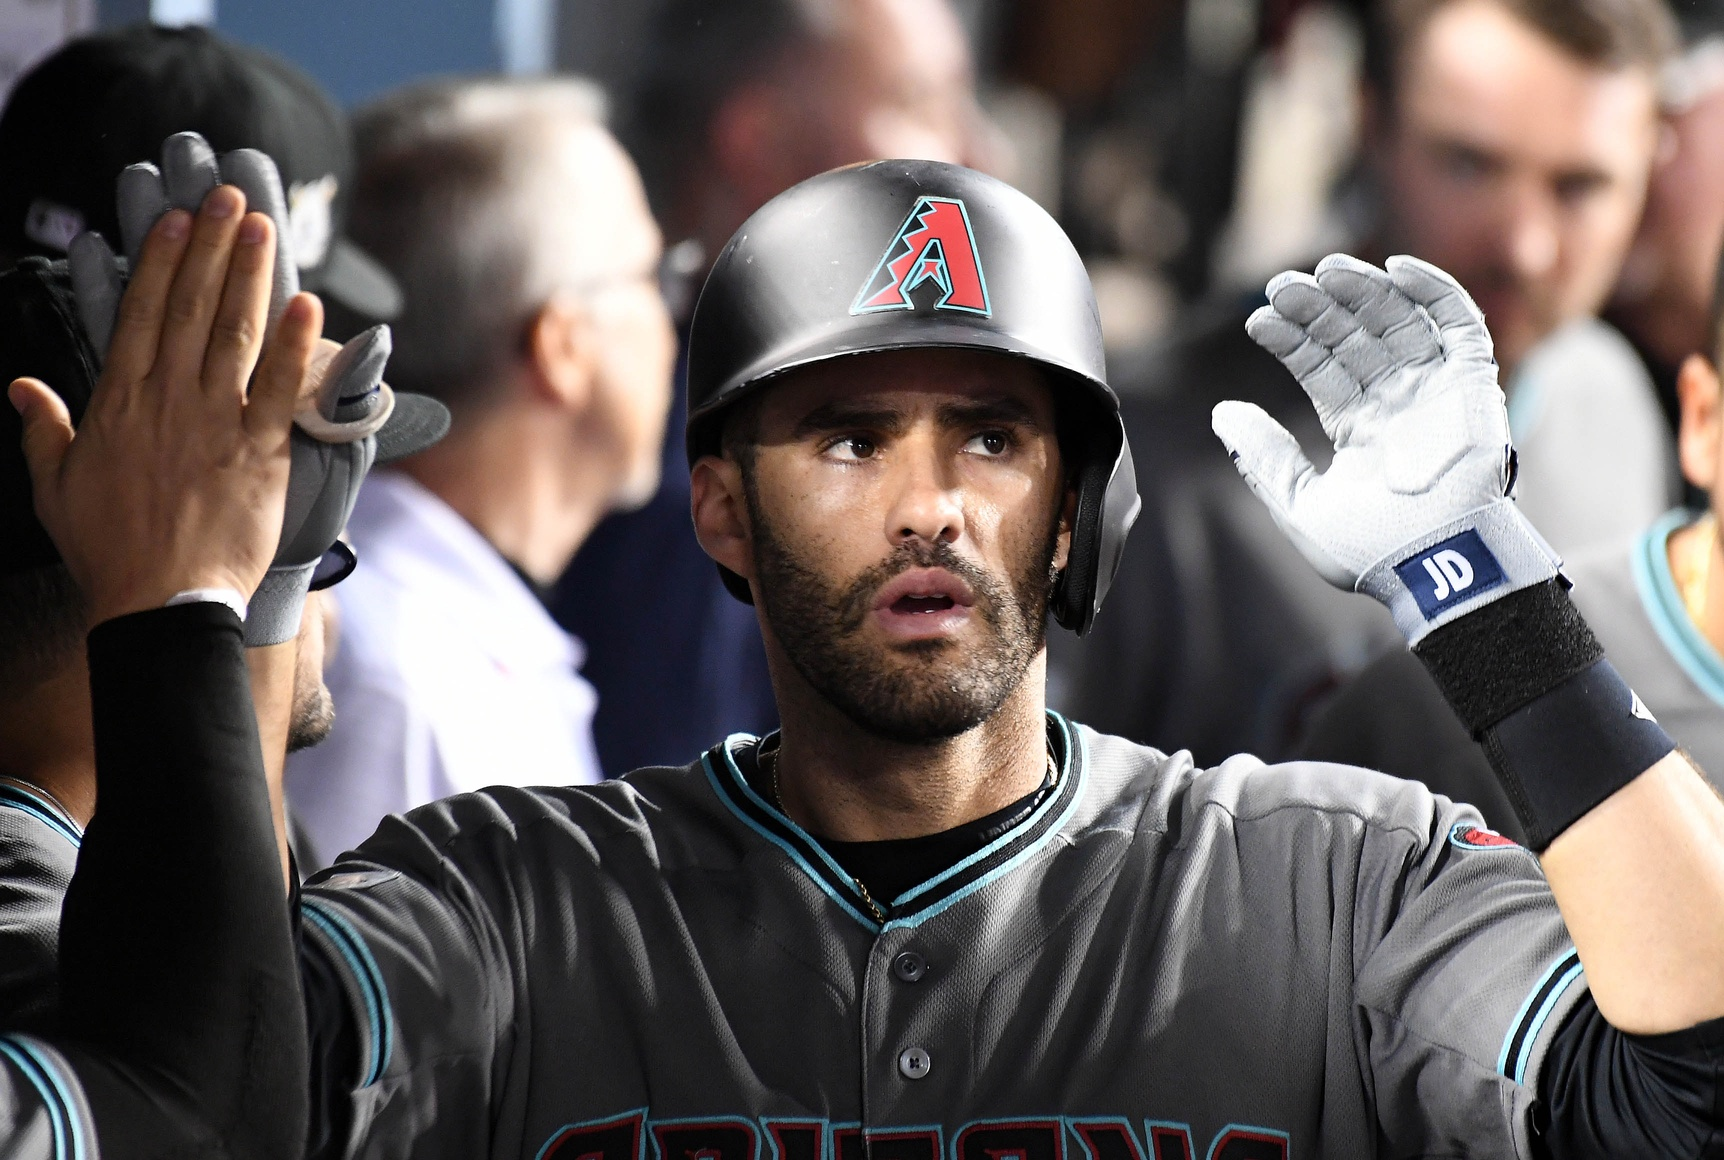 Bradford: Why J.D. Martinez is so important to the Red Sox